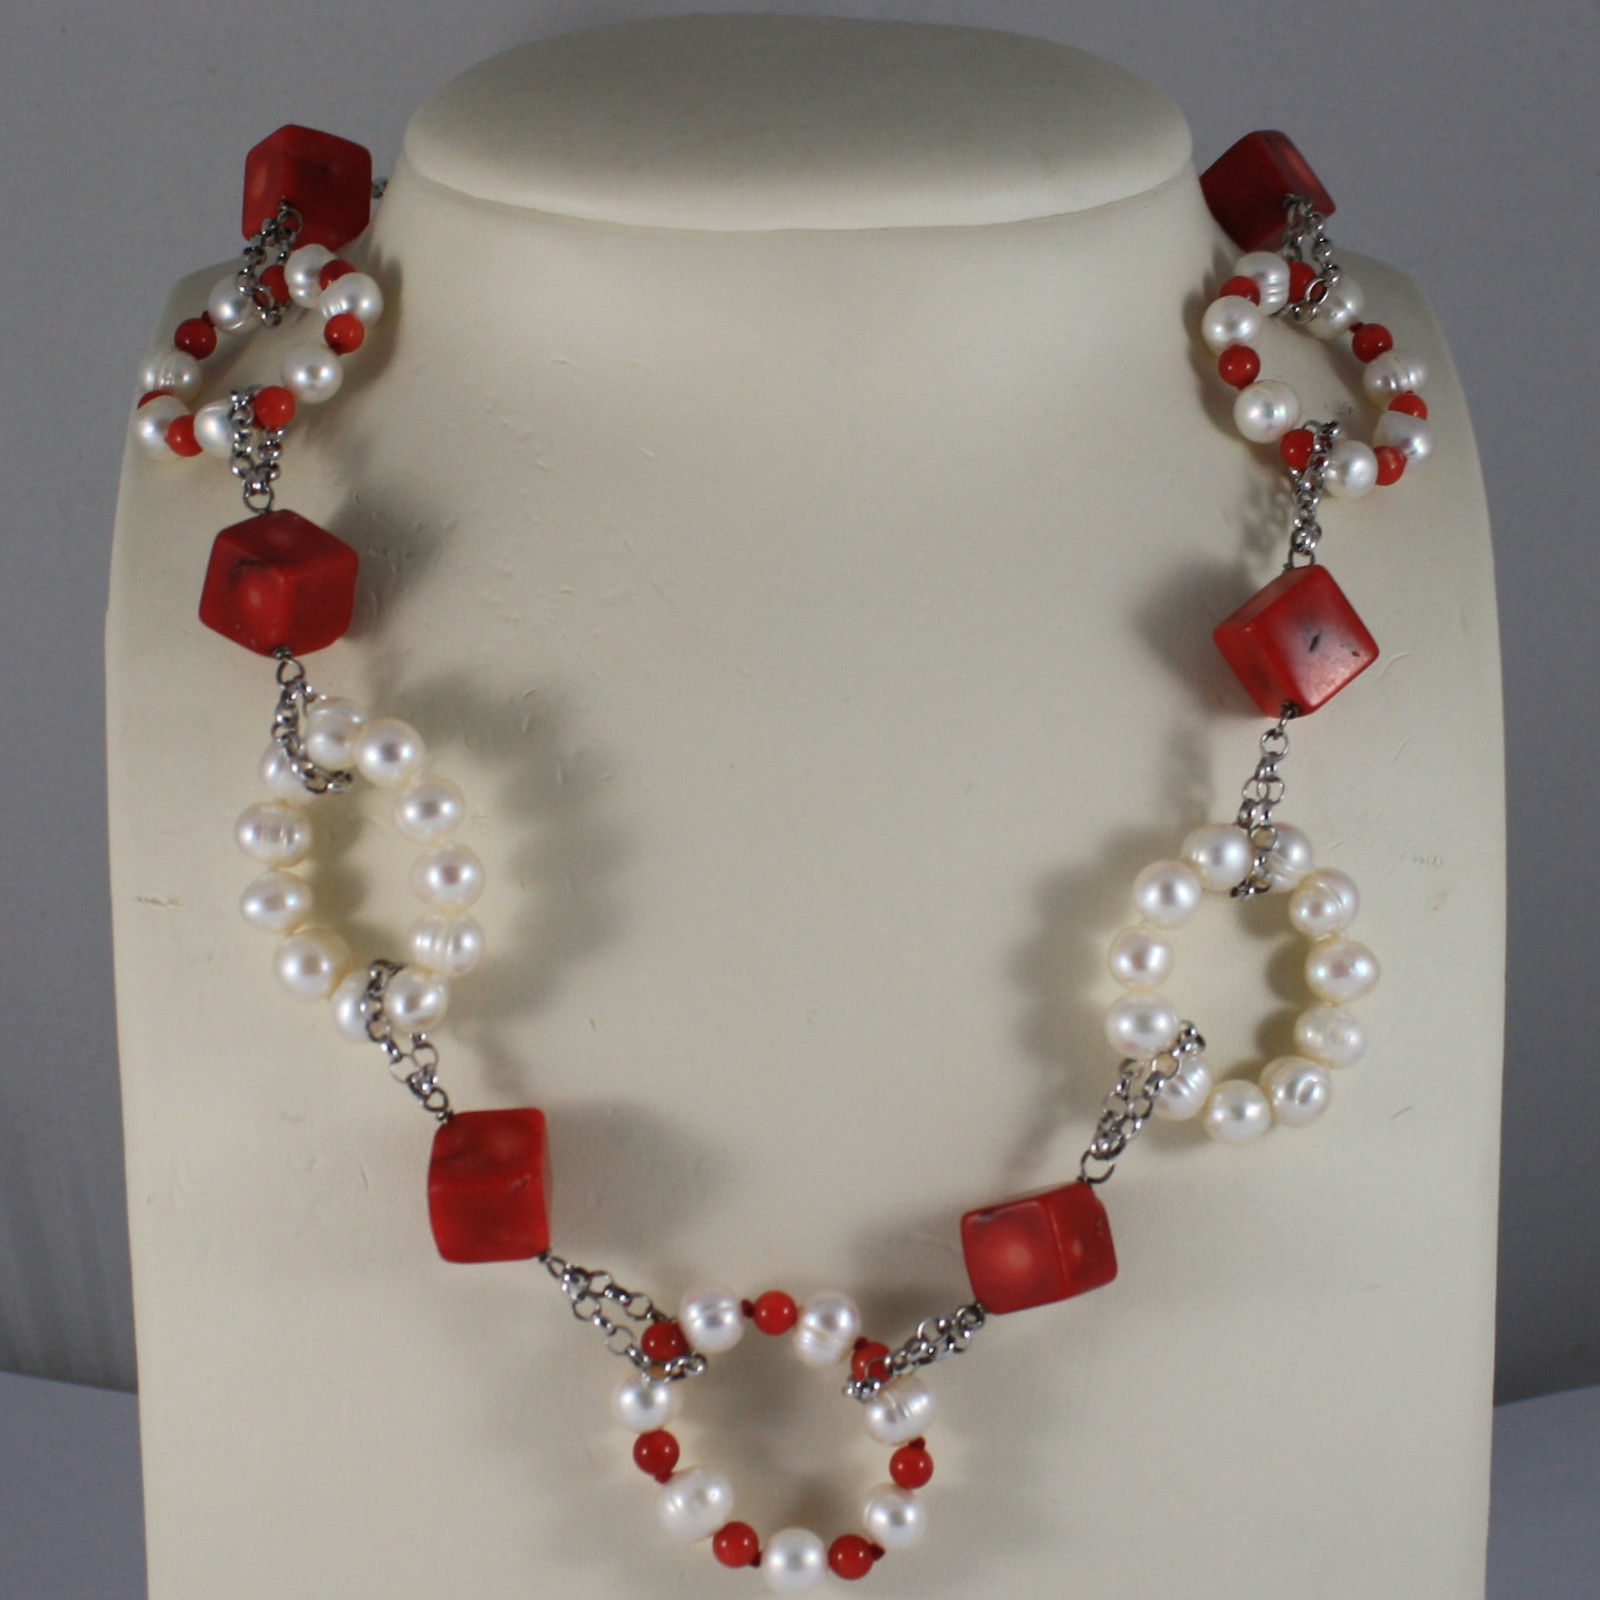 .925 SILVER RHODIUM NECKLACE WITH WHITE PEARLS AND RED CORAL BAMBOO